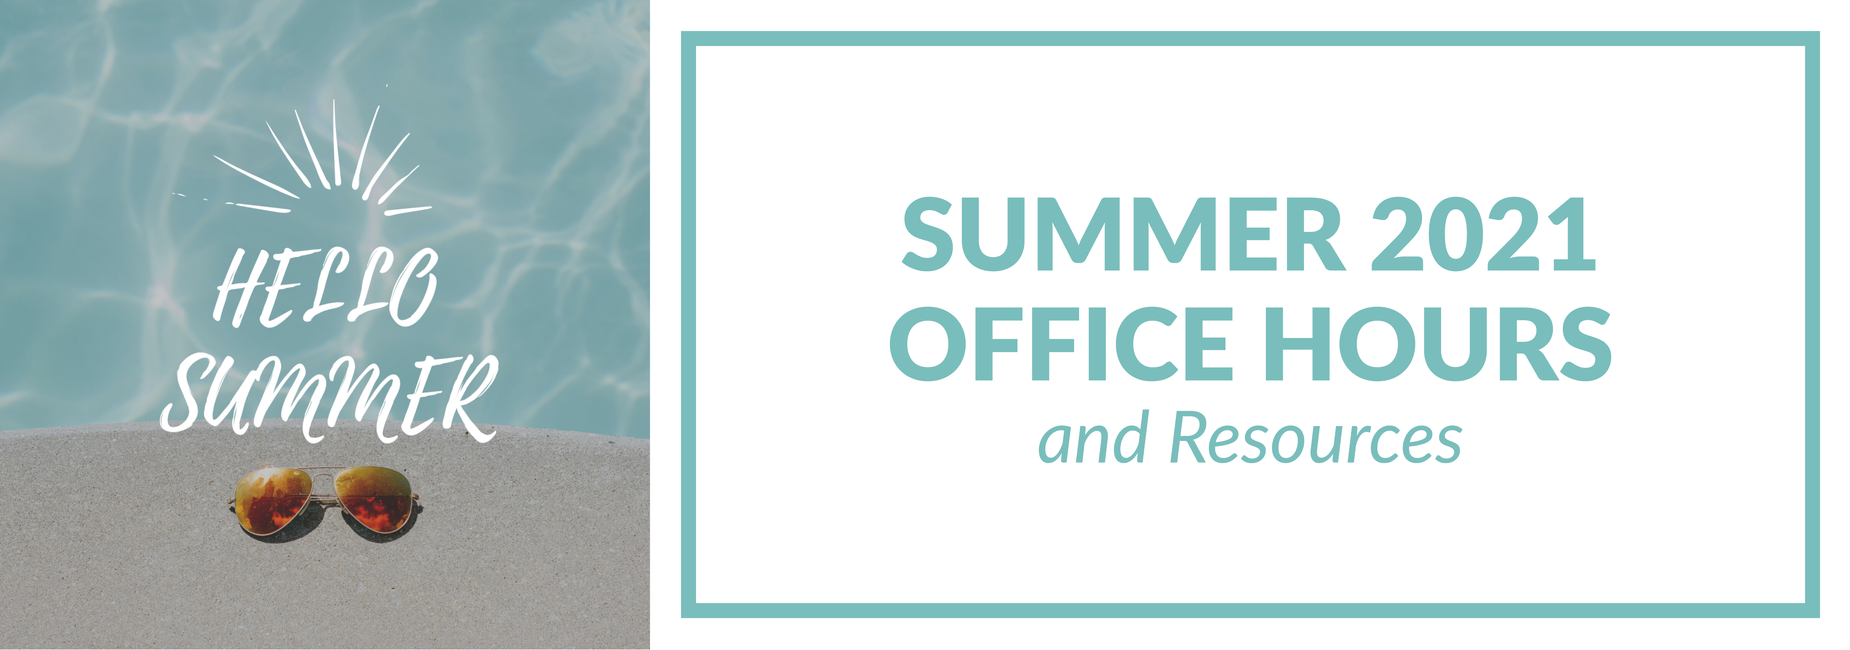 Summer 2021 Office Hours